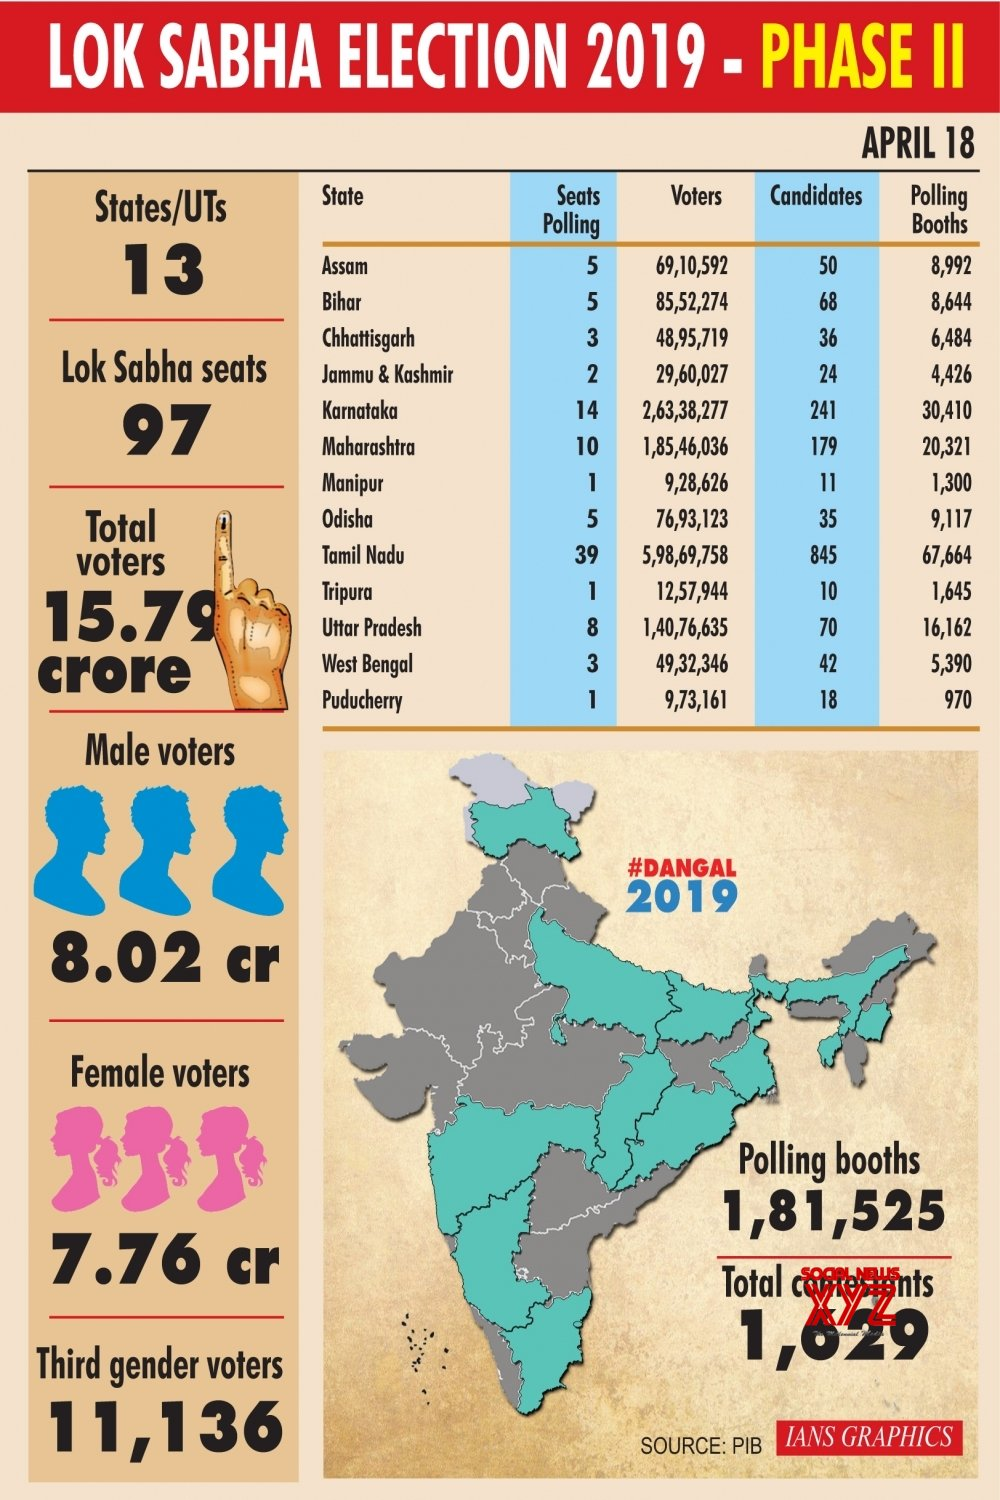 Infographics: Lok Sabha election 2019 - Phase II #Gallery